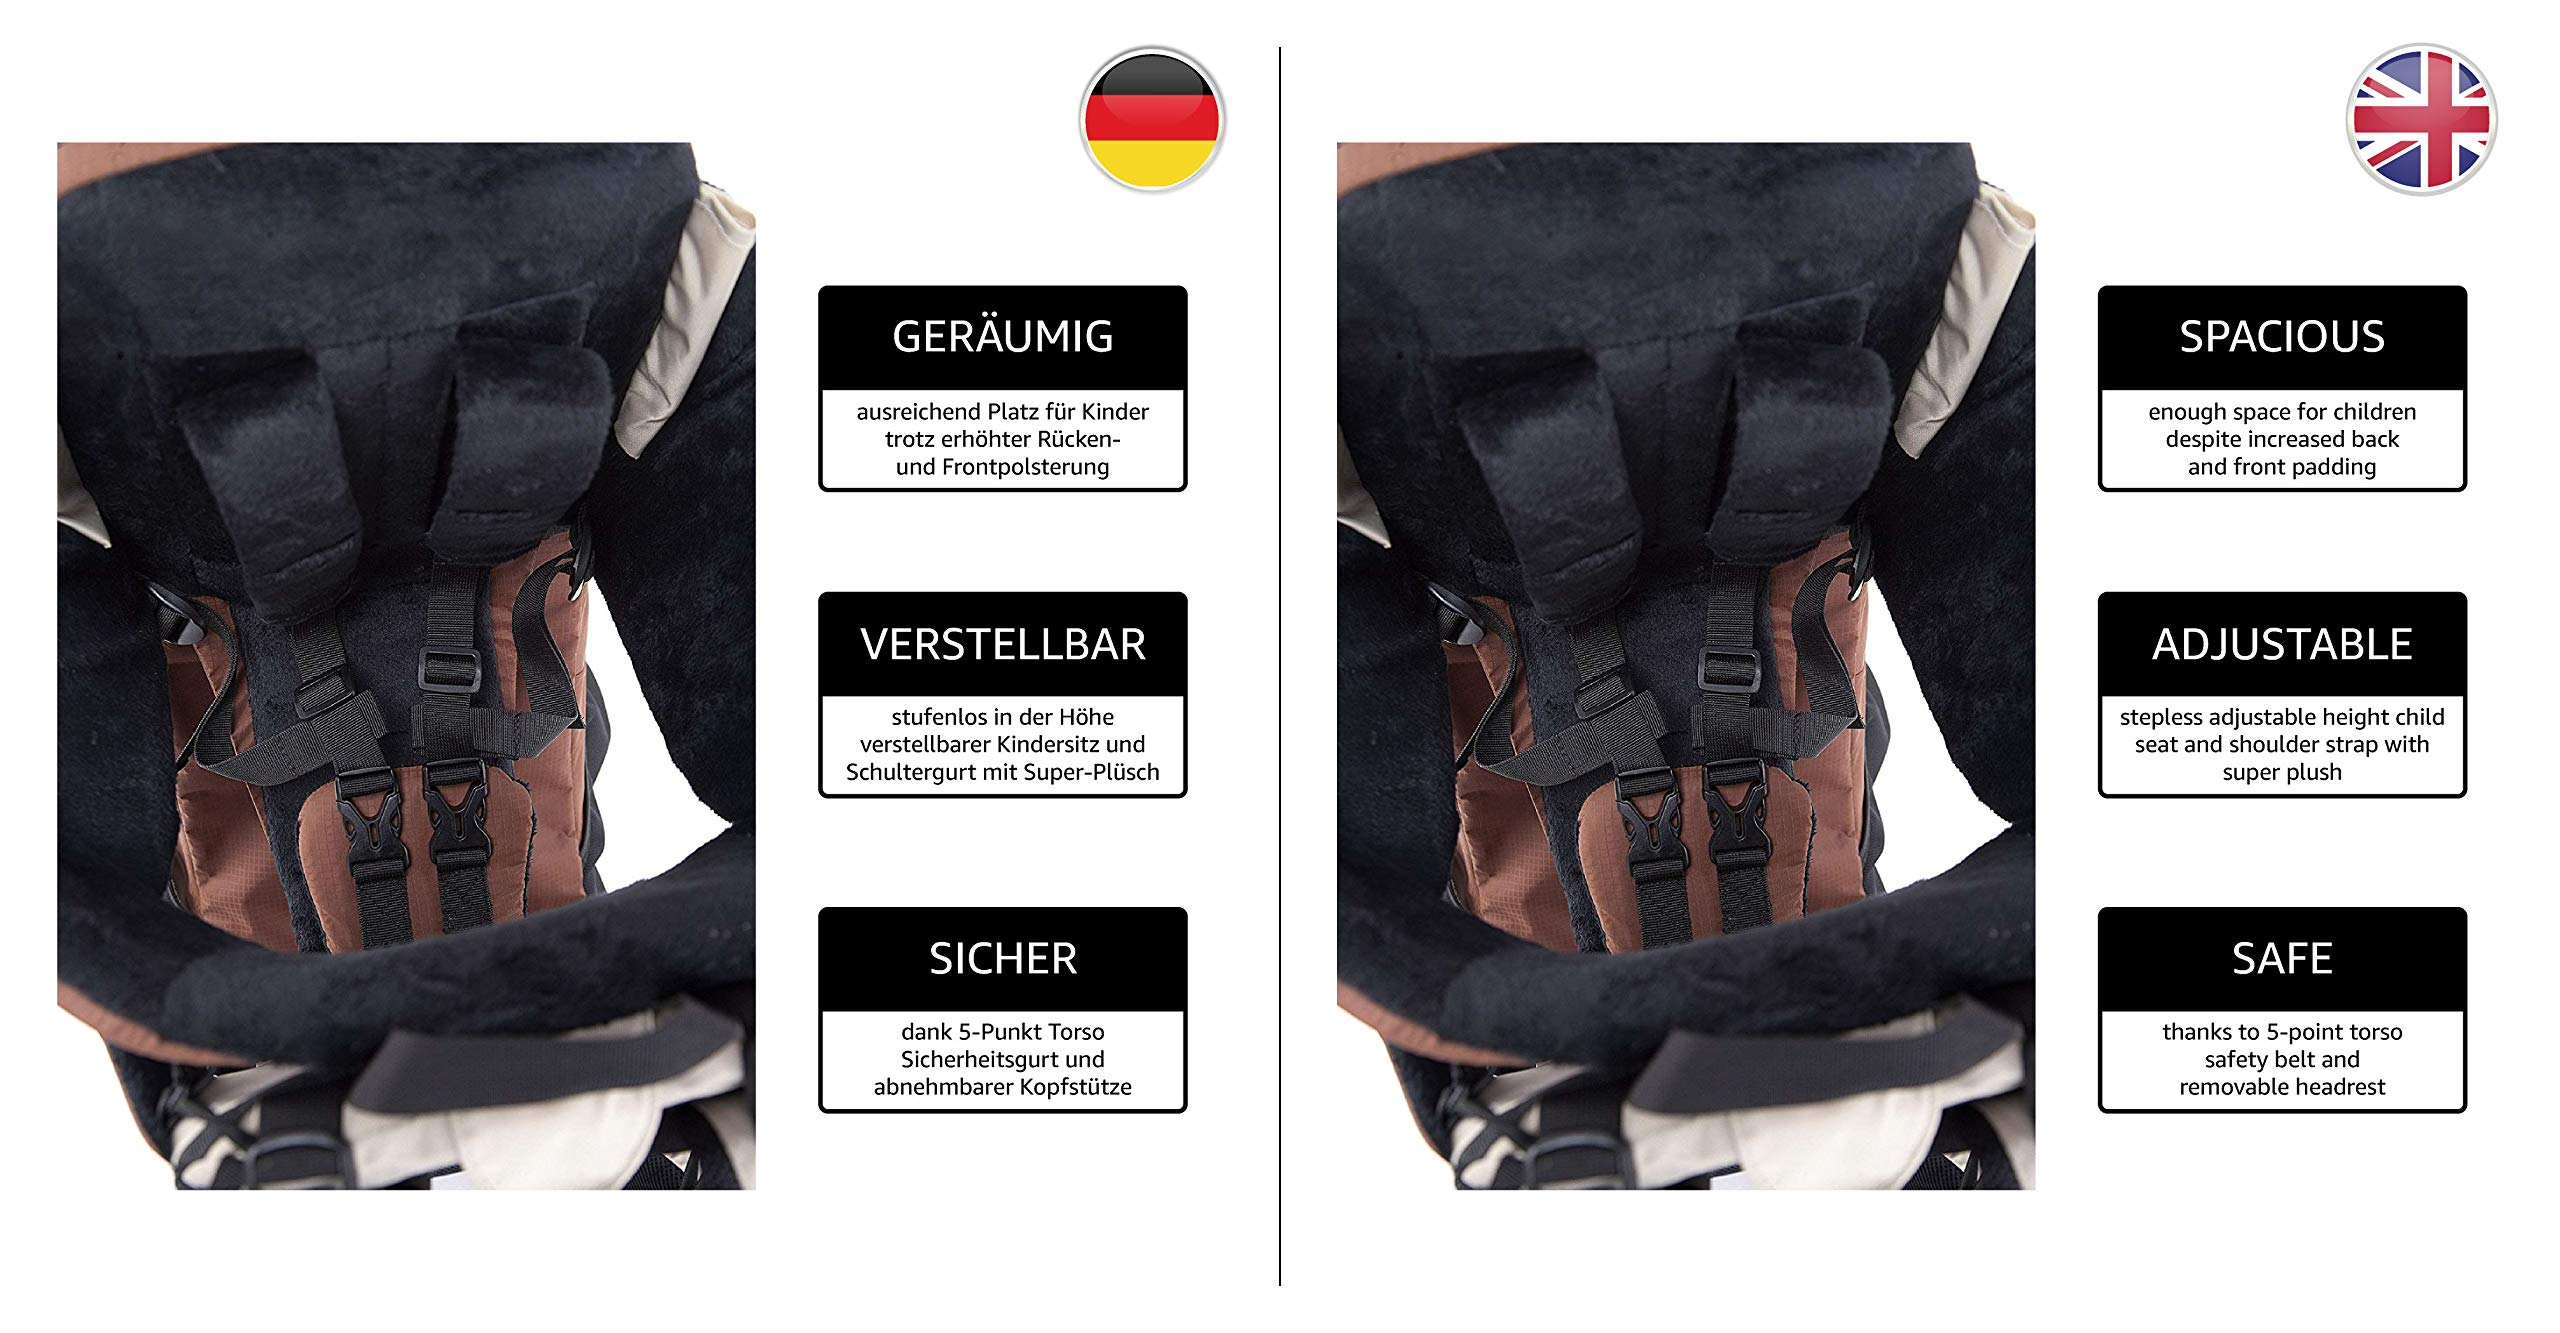 MONTIS RANGER PRO - Premium Backpack/Child Carrier - Holds up to 25kg M MONTIS OUTDOOR 89cm high, 37cm wide | Carries loads up to 25kg, seat bag 30L | Approx. 2.3kg (without extras) Easy-clean outer material | Fully-adjustable, padded 5-point child harness Super soft plush lining, raised wind guard, can be loaded from both sides | Fully-adjustable carry support system, additional ergonomic options for women | Comfortable waist belt for extended wearing with side pockets 9